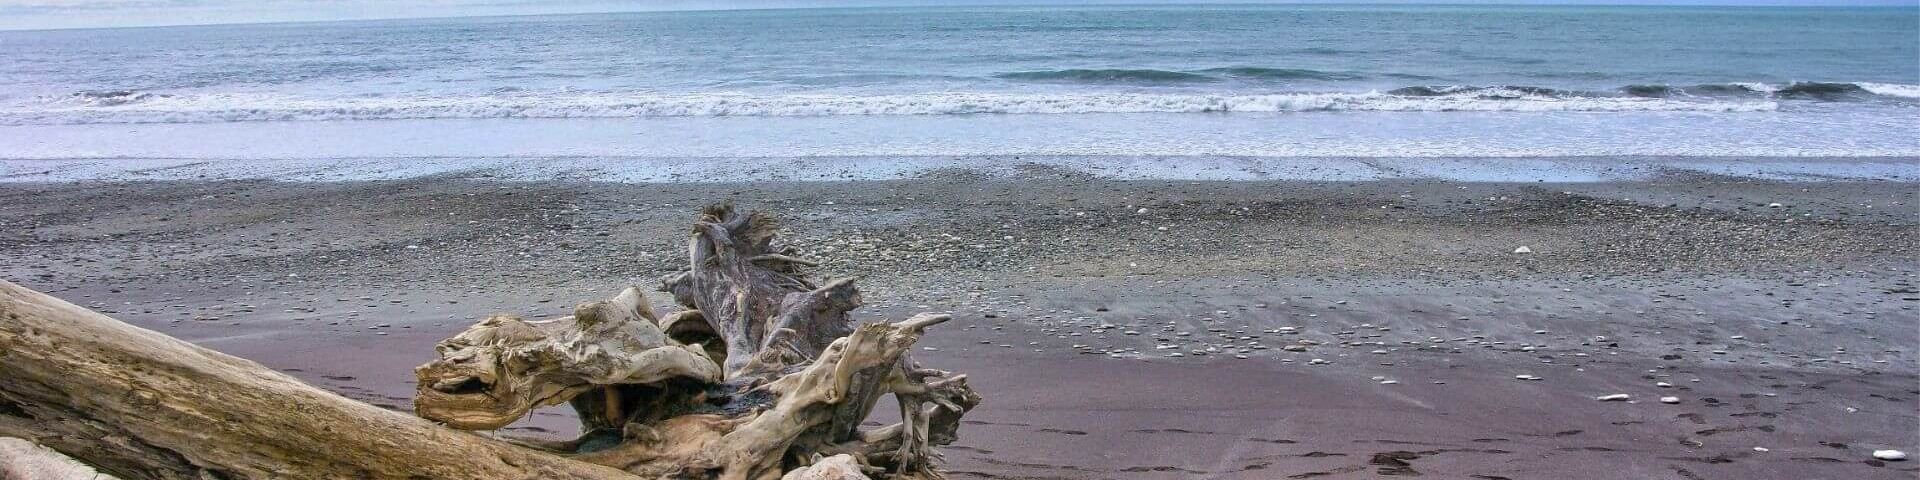 The beaches of Bruce Bay, West Coast of South Island